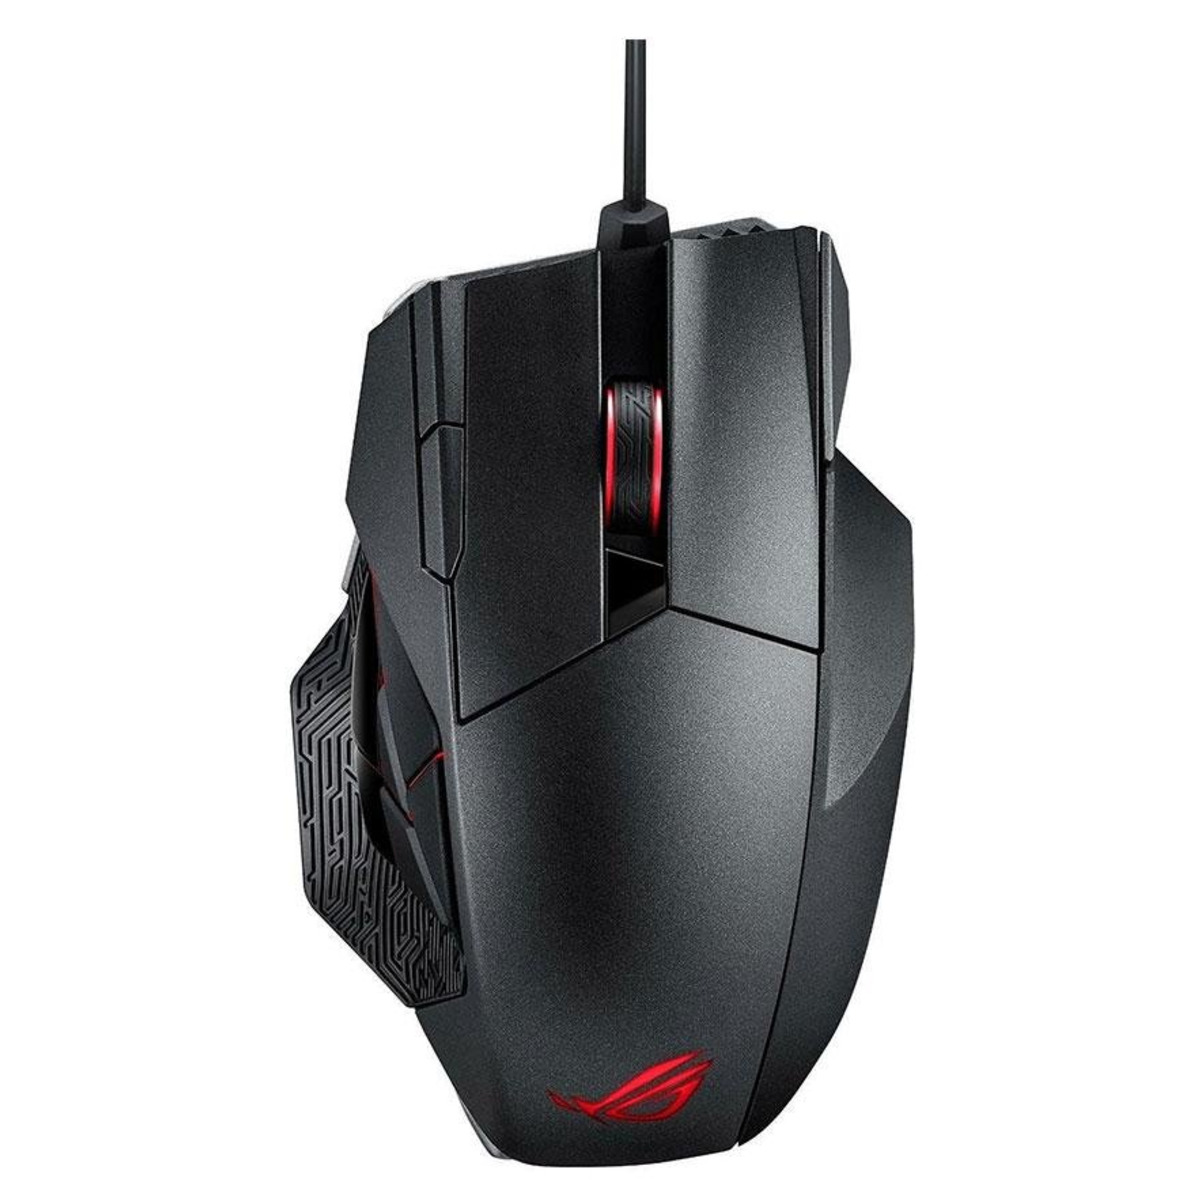 4712900249934-asus-mouse-mouse-gaming-spatha-l701-1a-rog-nero